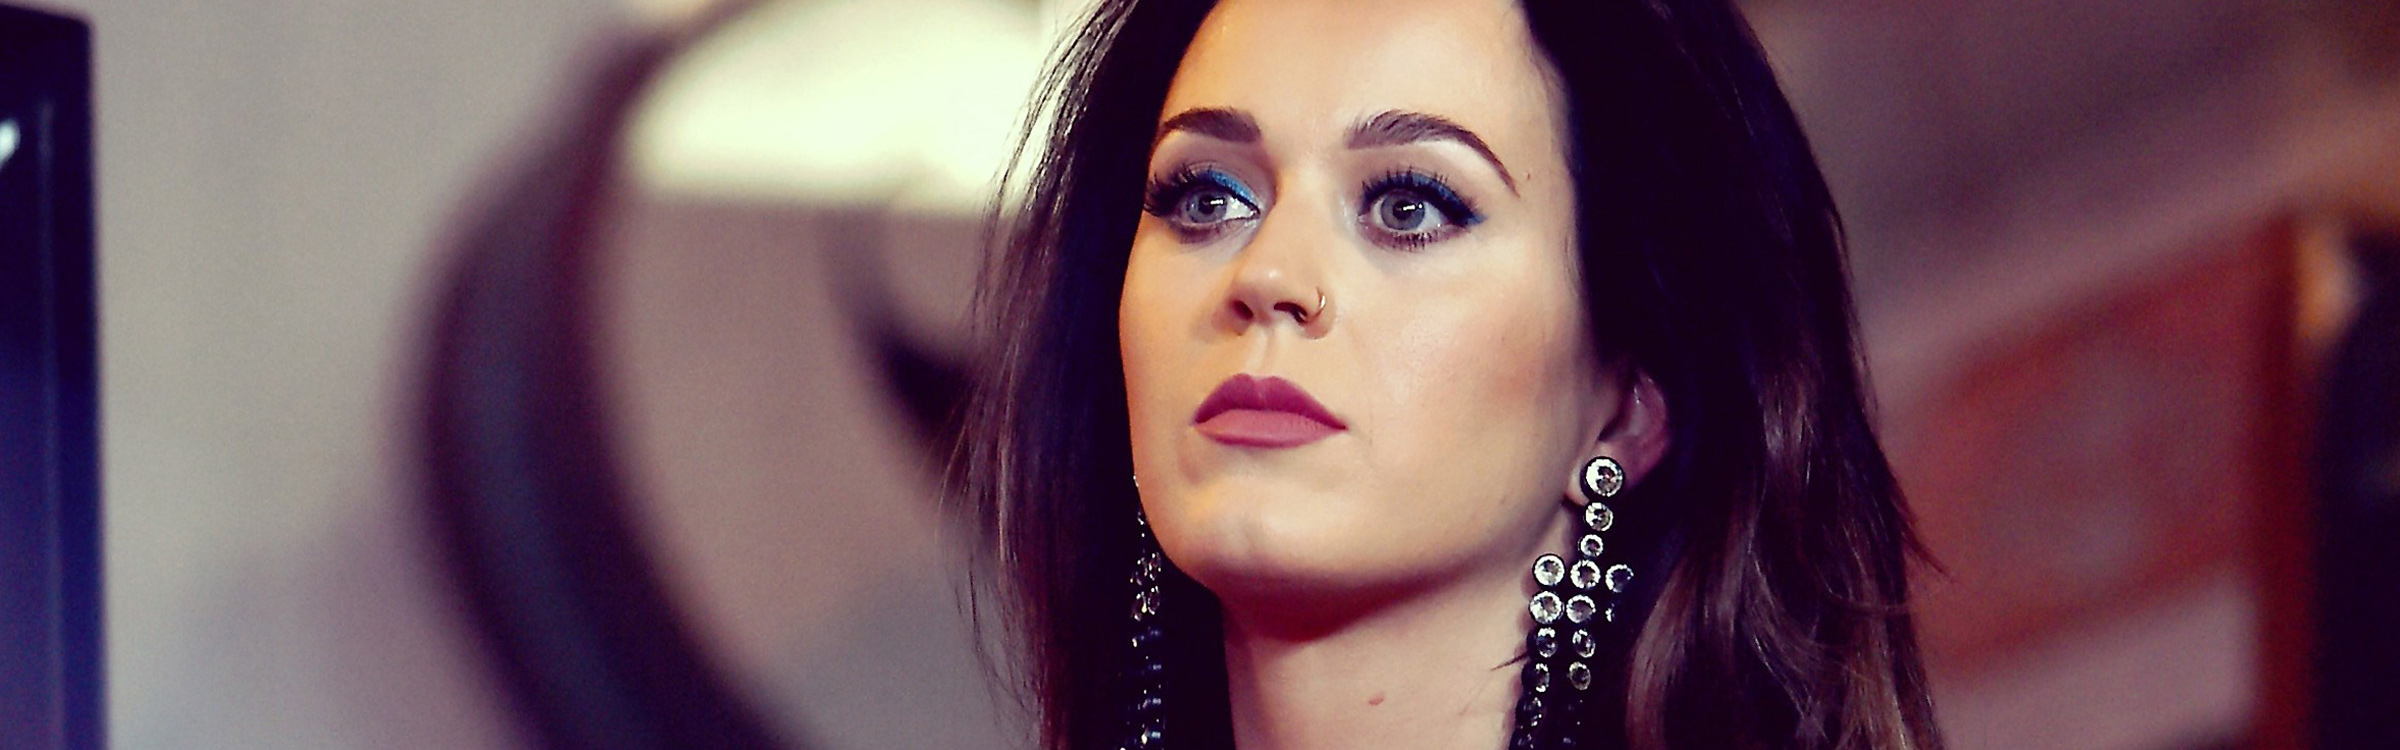 Katy perry hacker header